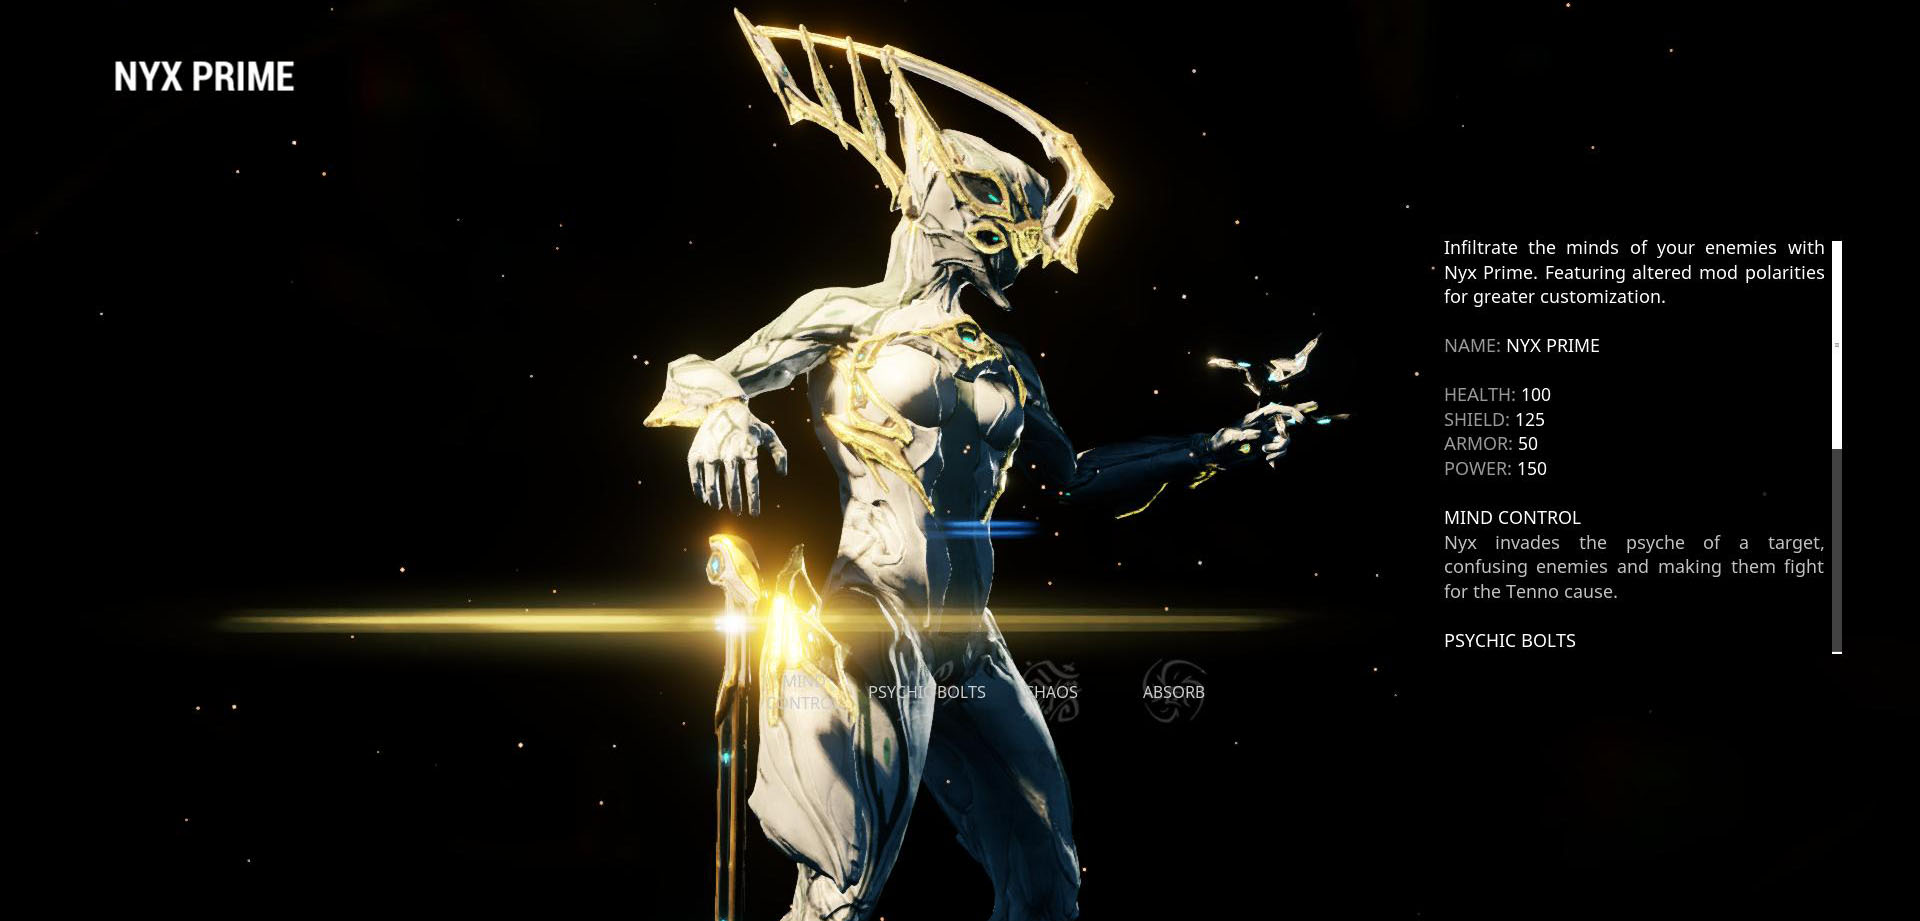 Nyx Prime is master of confusing the enemy and mind control.